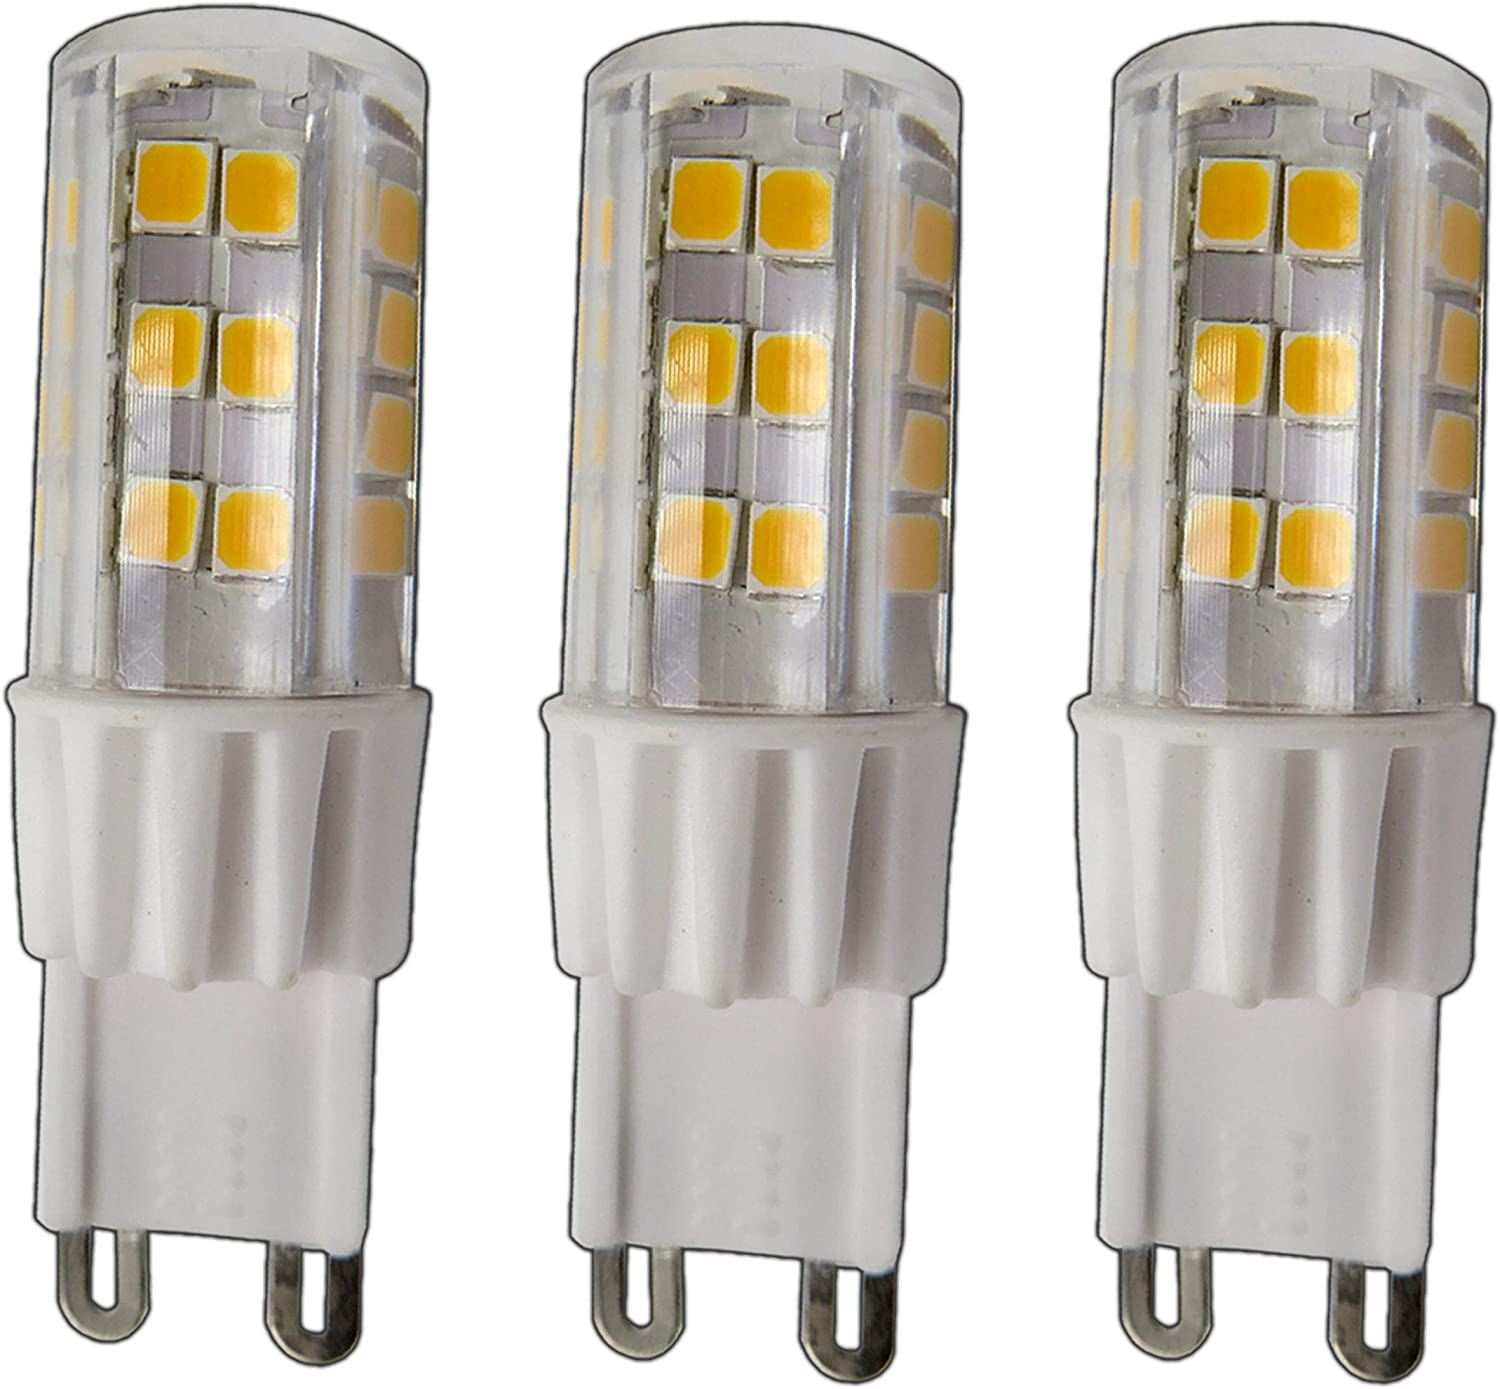 G9 LED Light Bulbs Dimmable Warm White